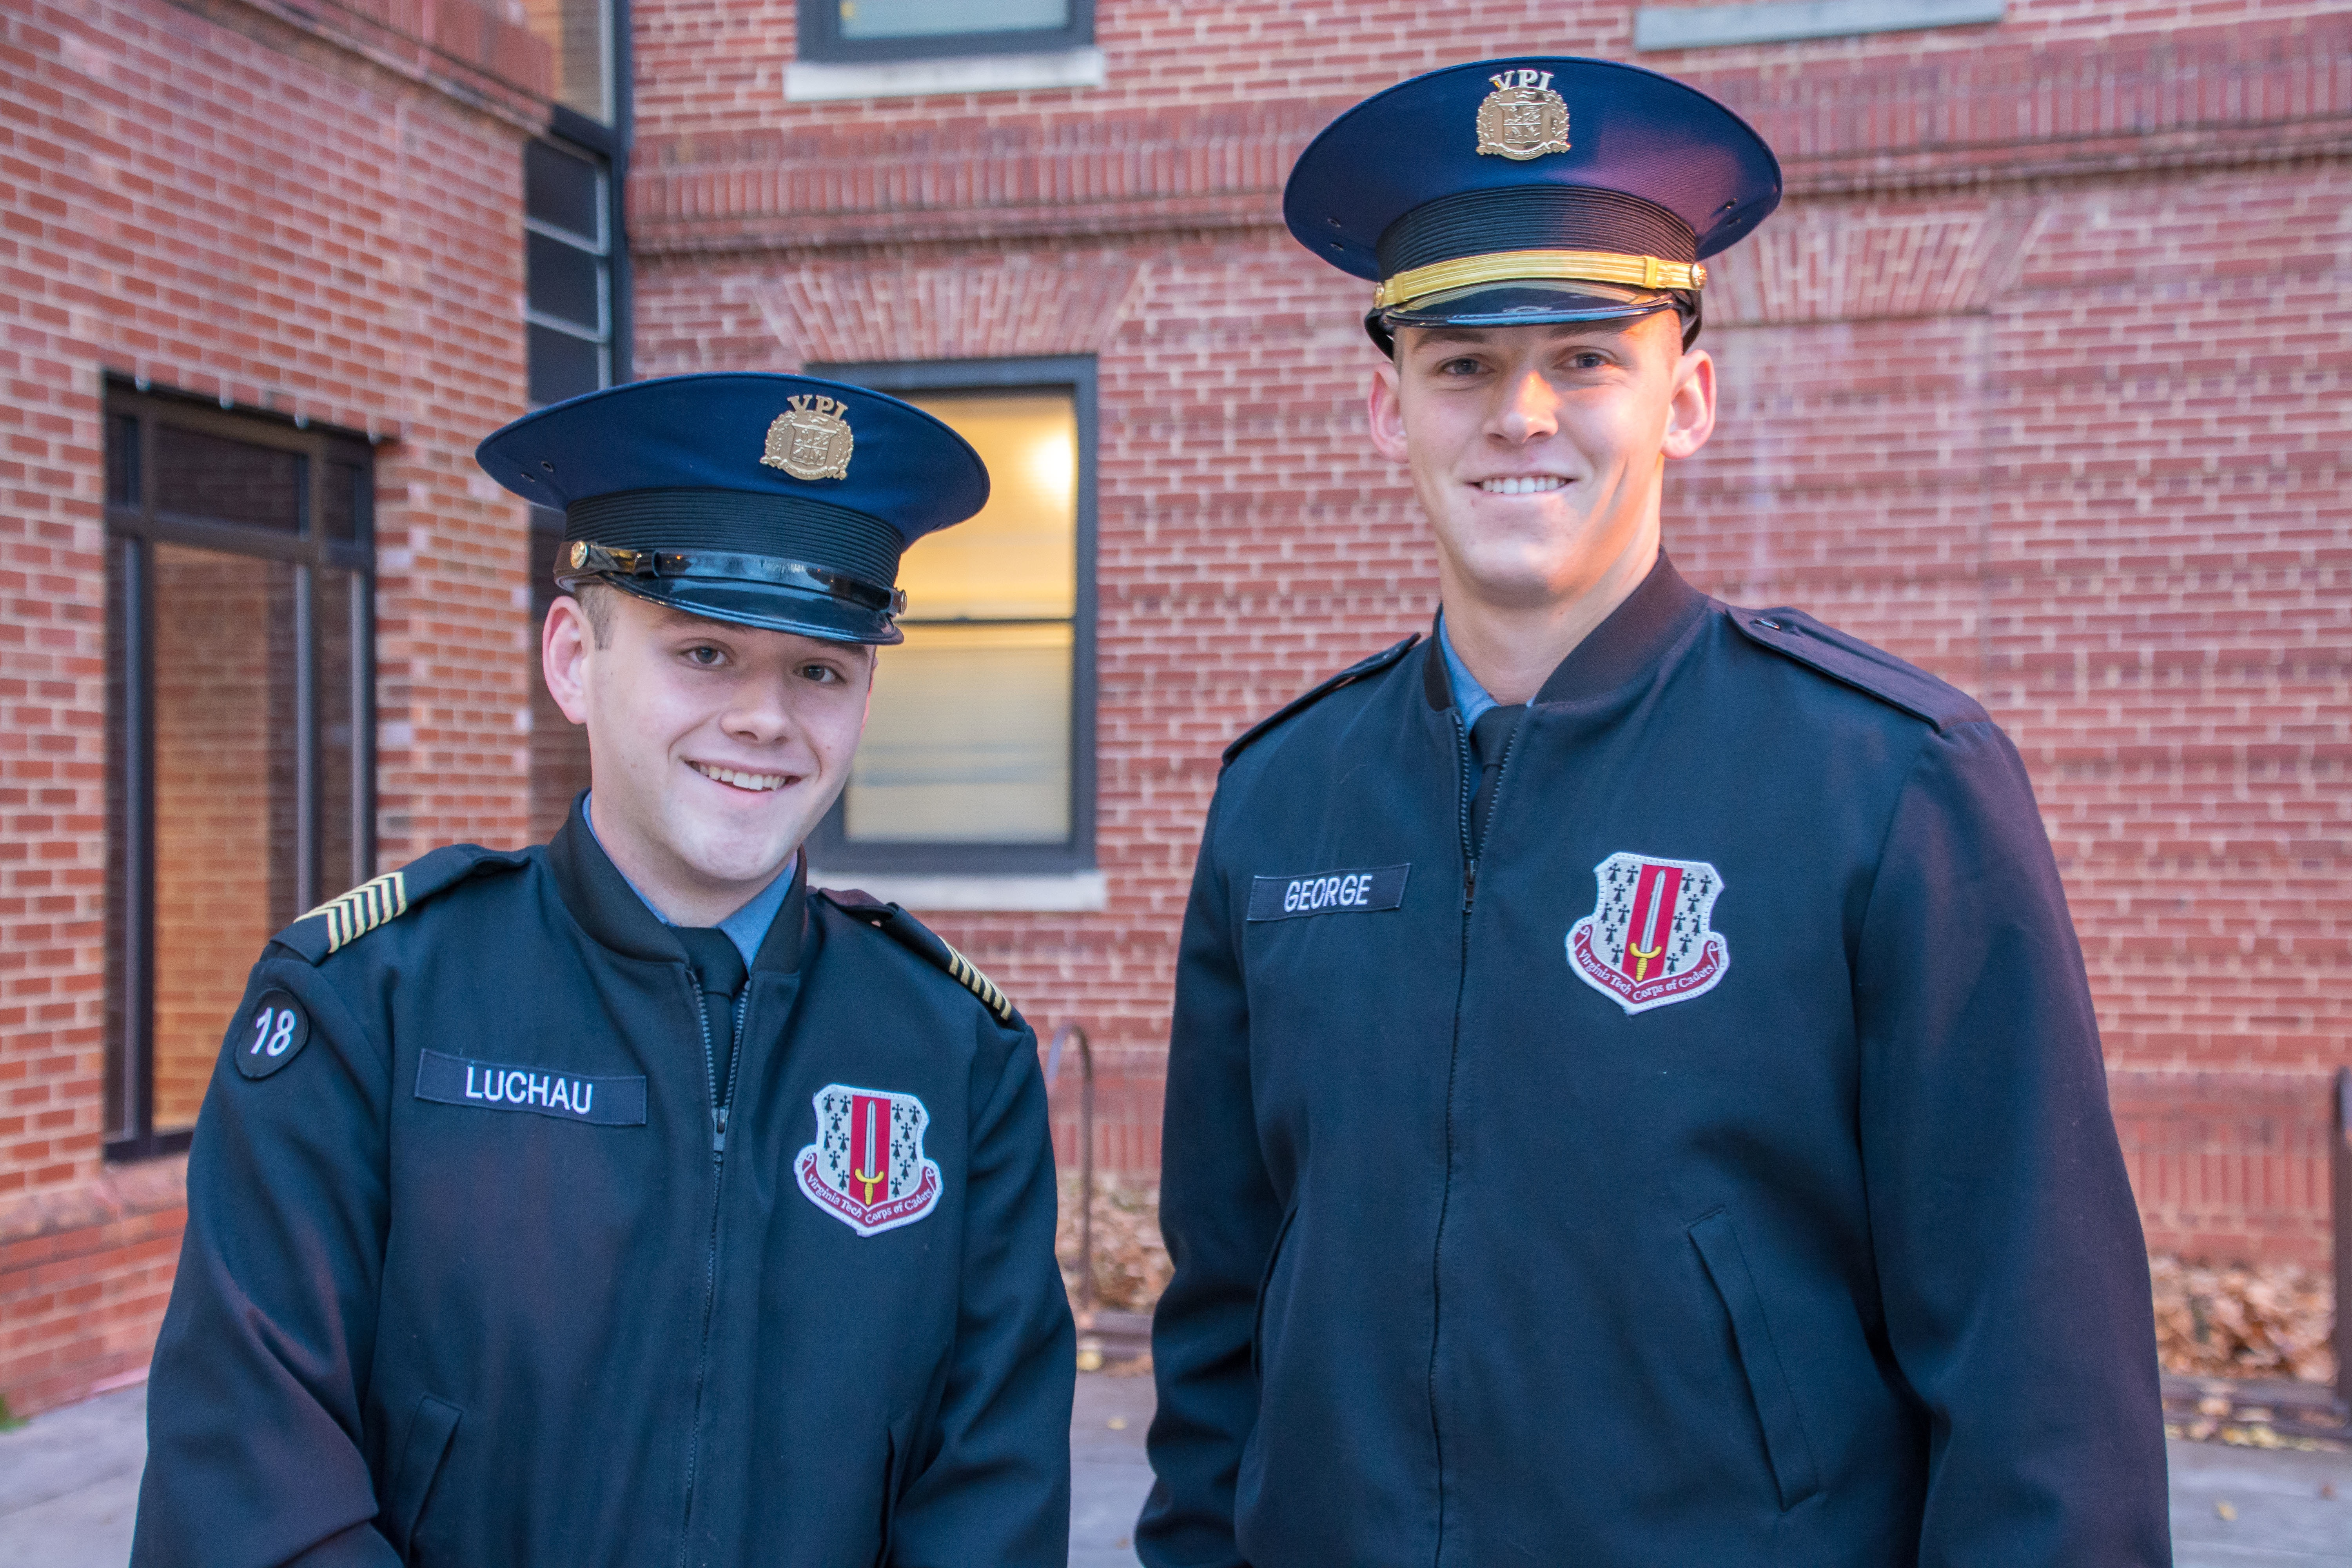 From left to right are Cadet Donald Luchau and Cadet Andrew George on teh Upper Quad.